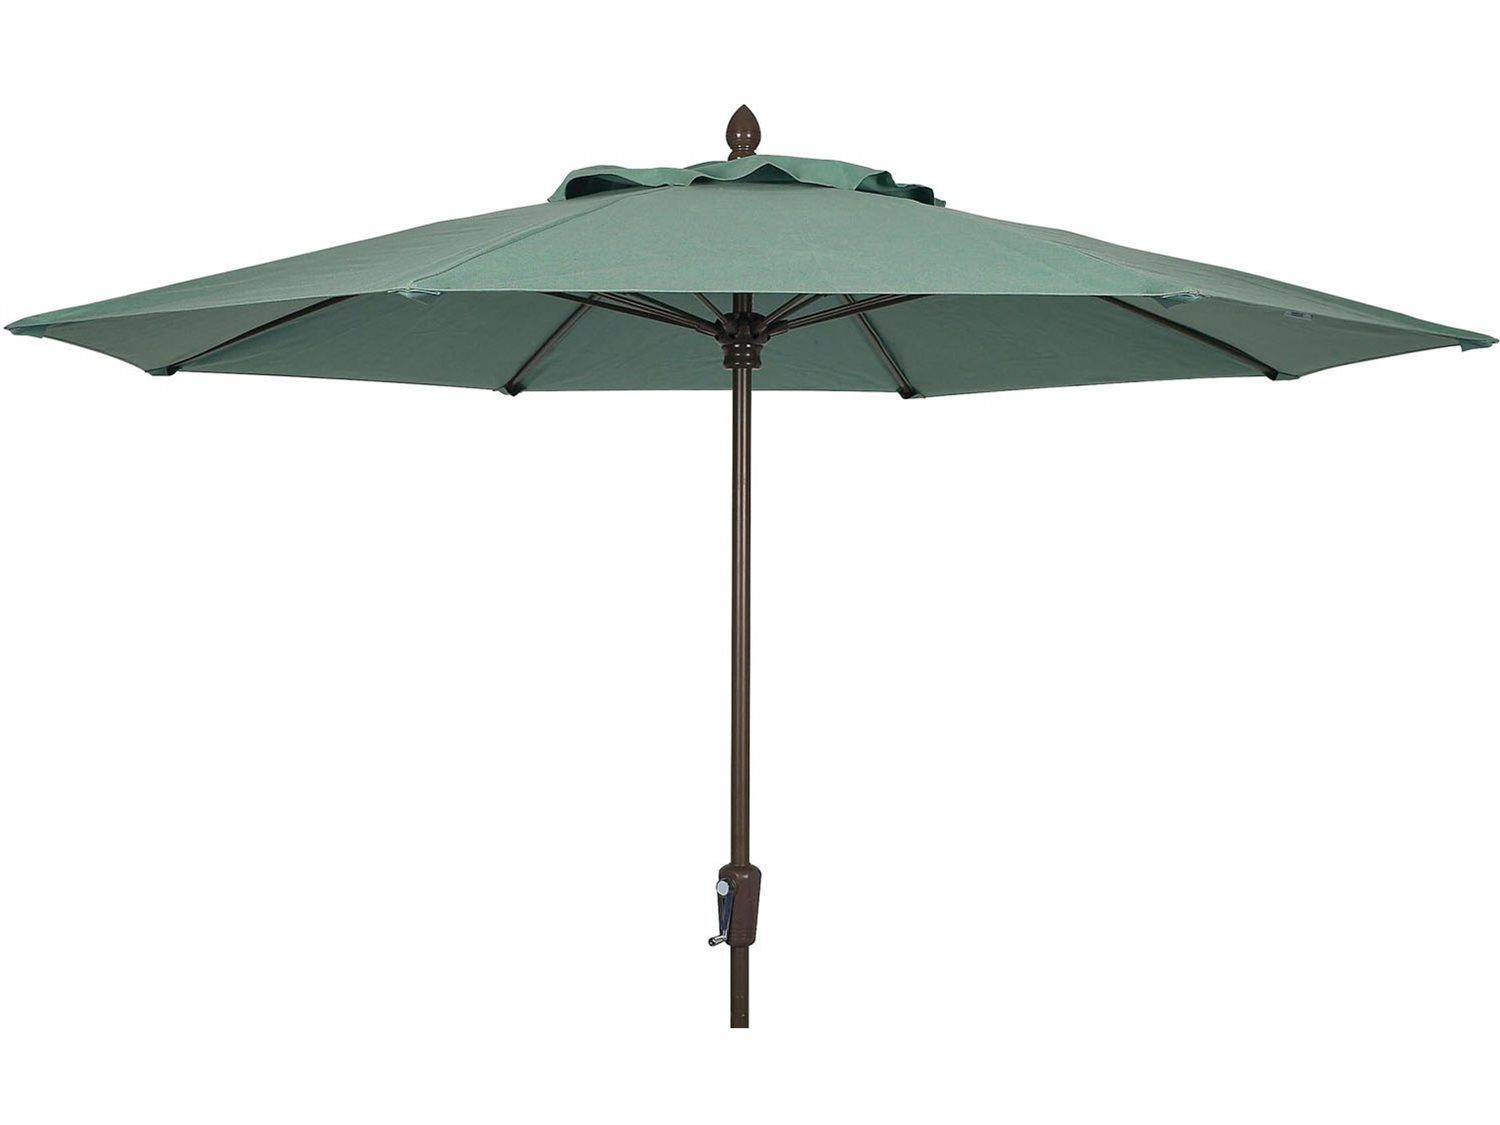 Woodard Fiberglass 9 Foot Octagonal Umbrella 1490sccrw